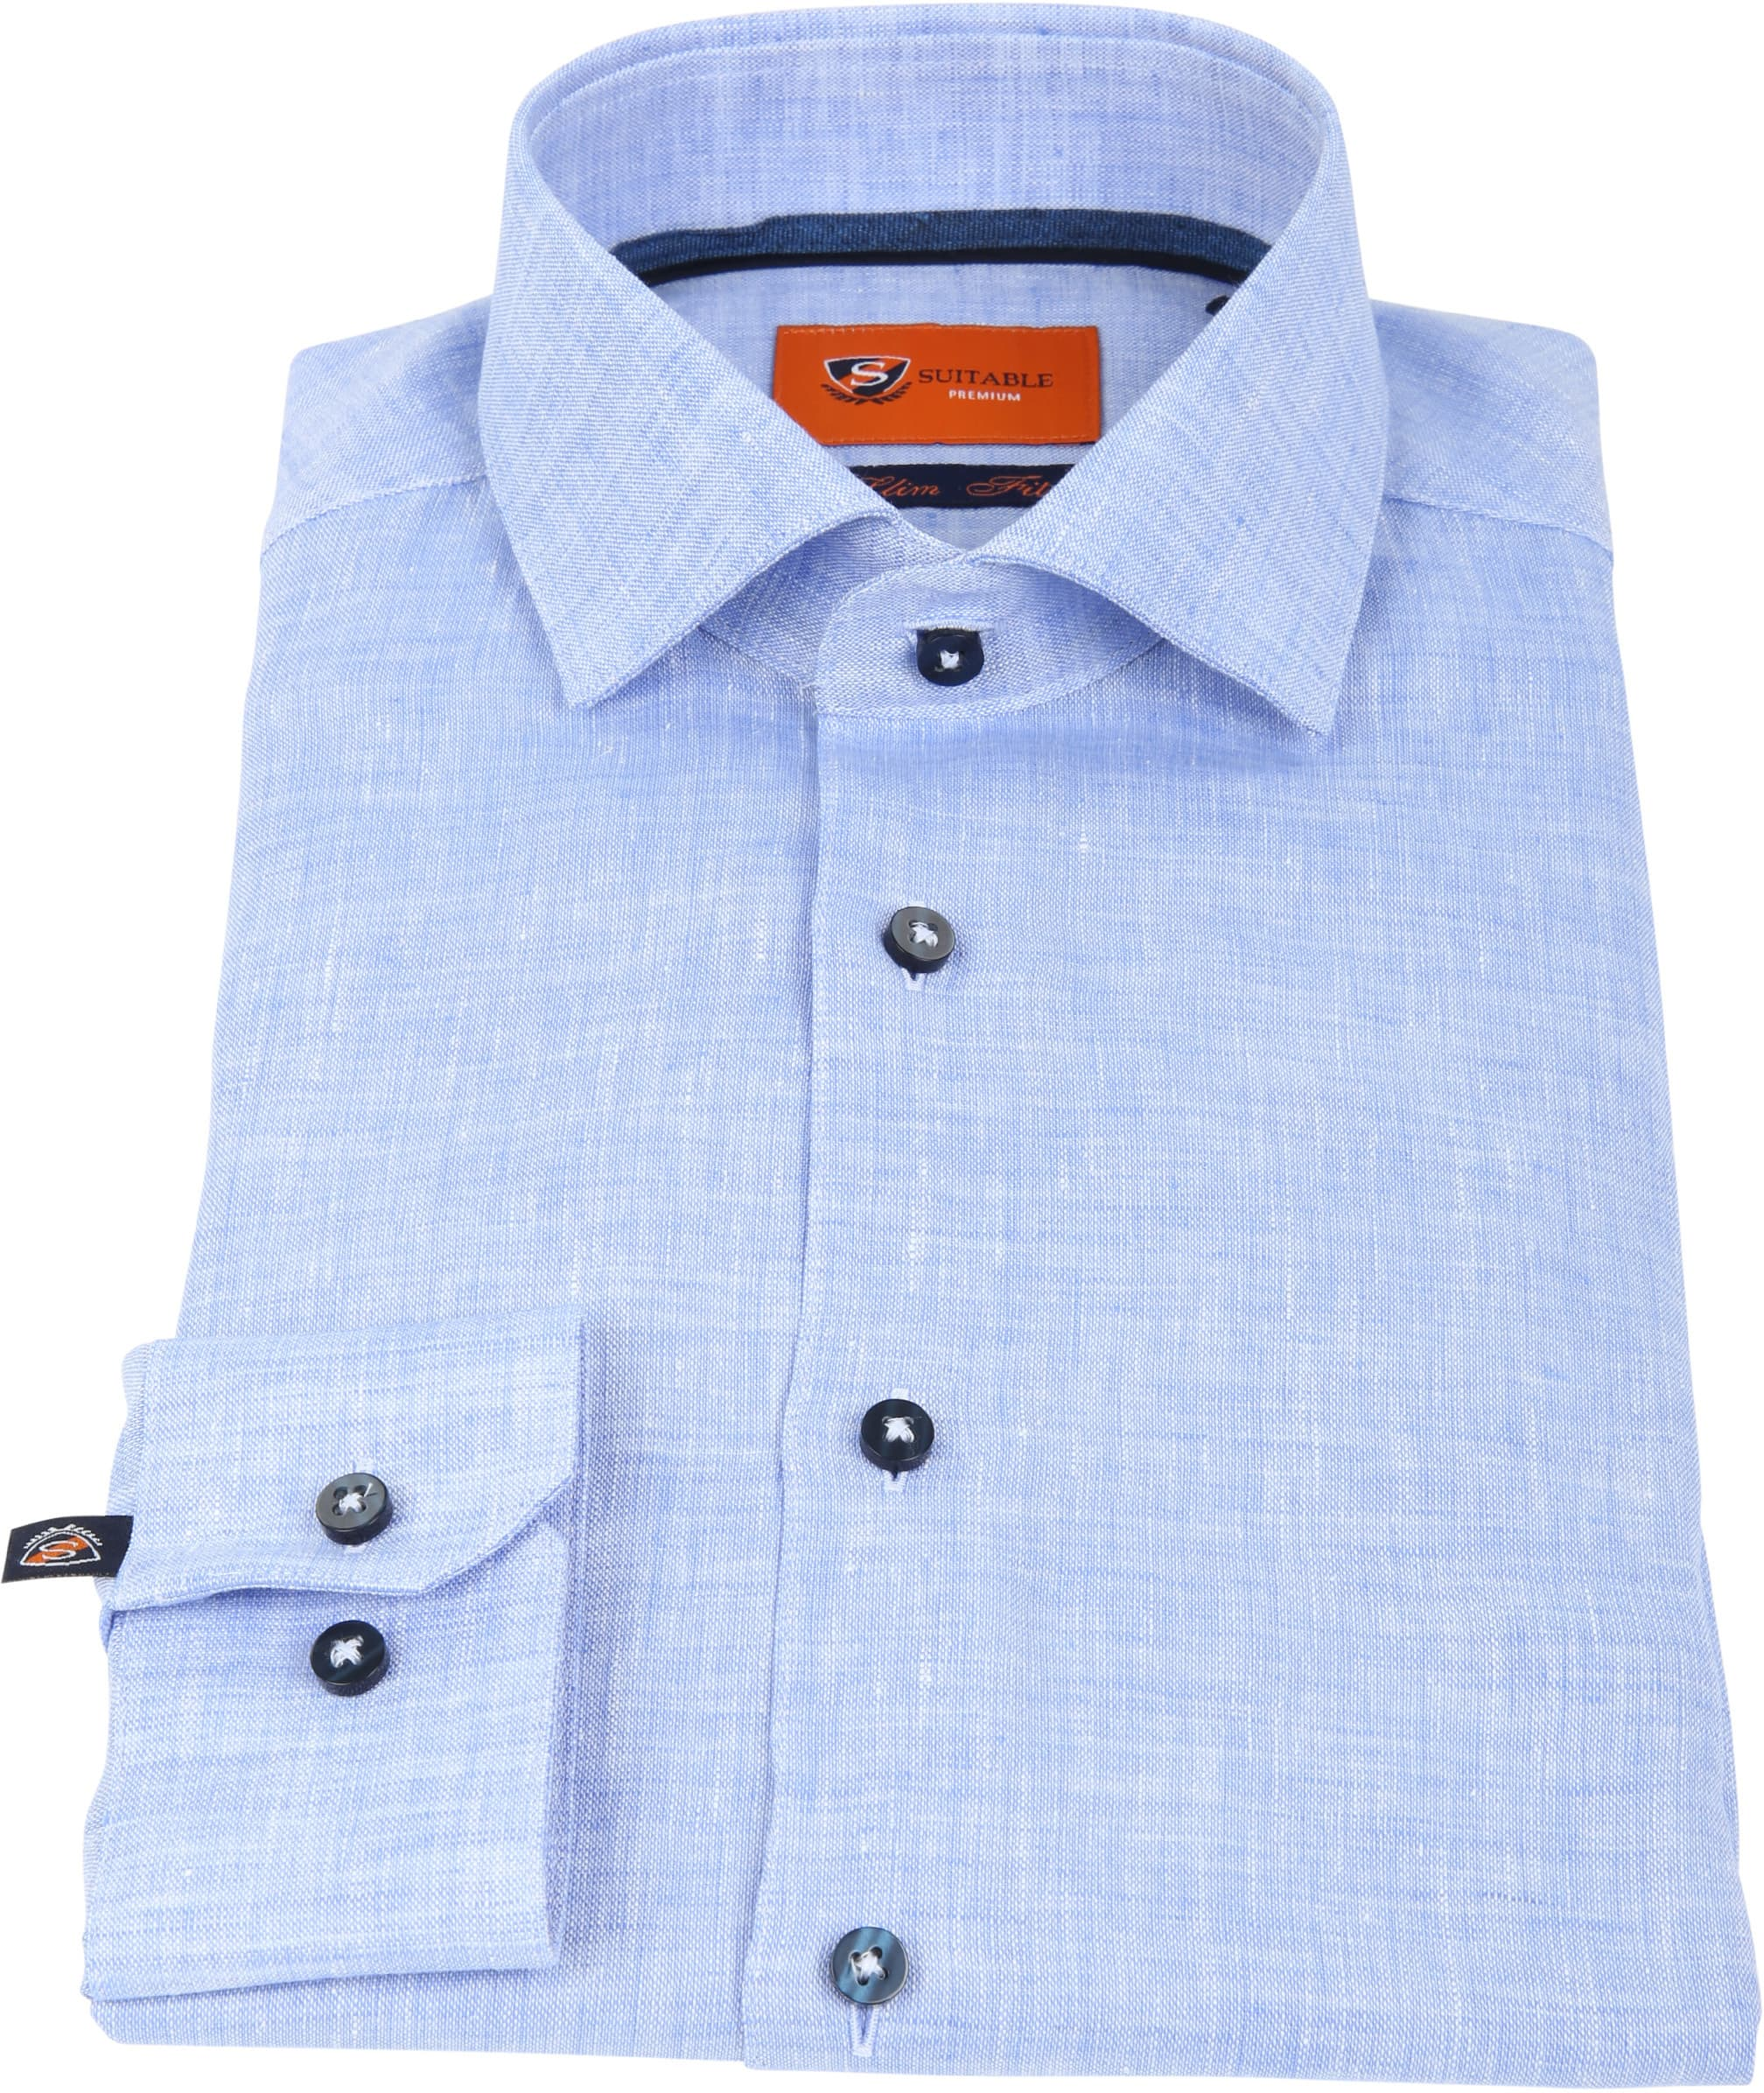 Suitable Shirt Linen Blue D81-12 foto 2